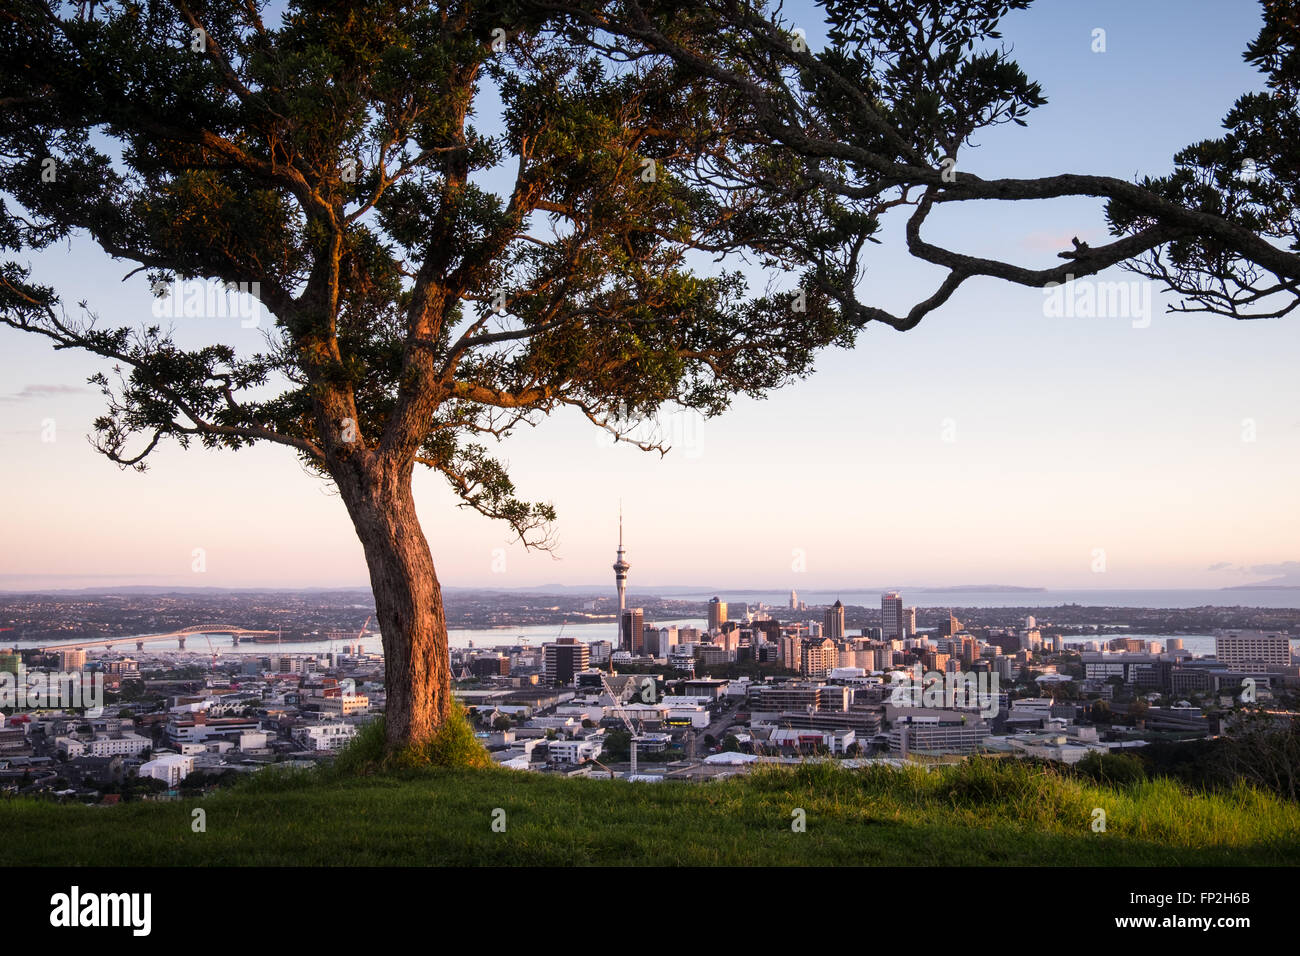 A view of Auckland city from Mt. Eden. - Stock Image